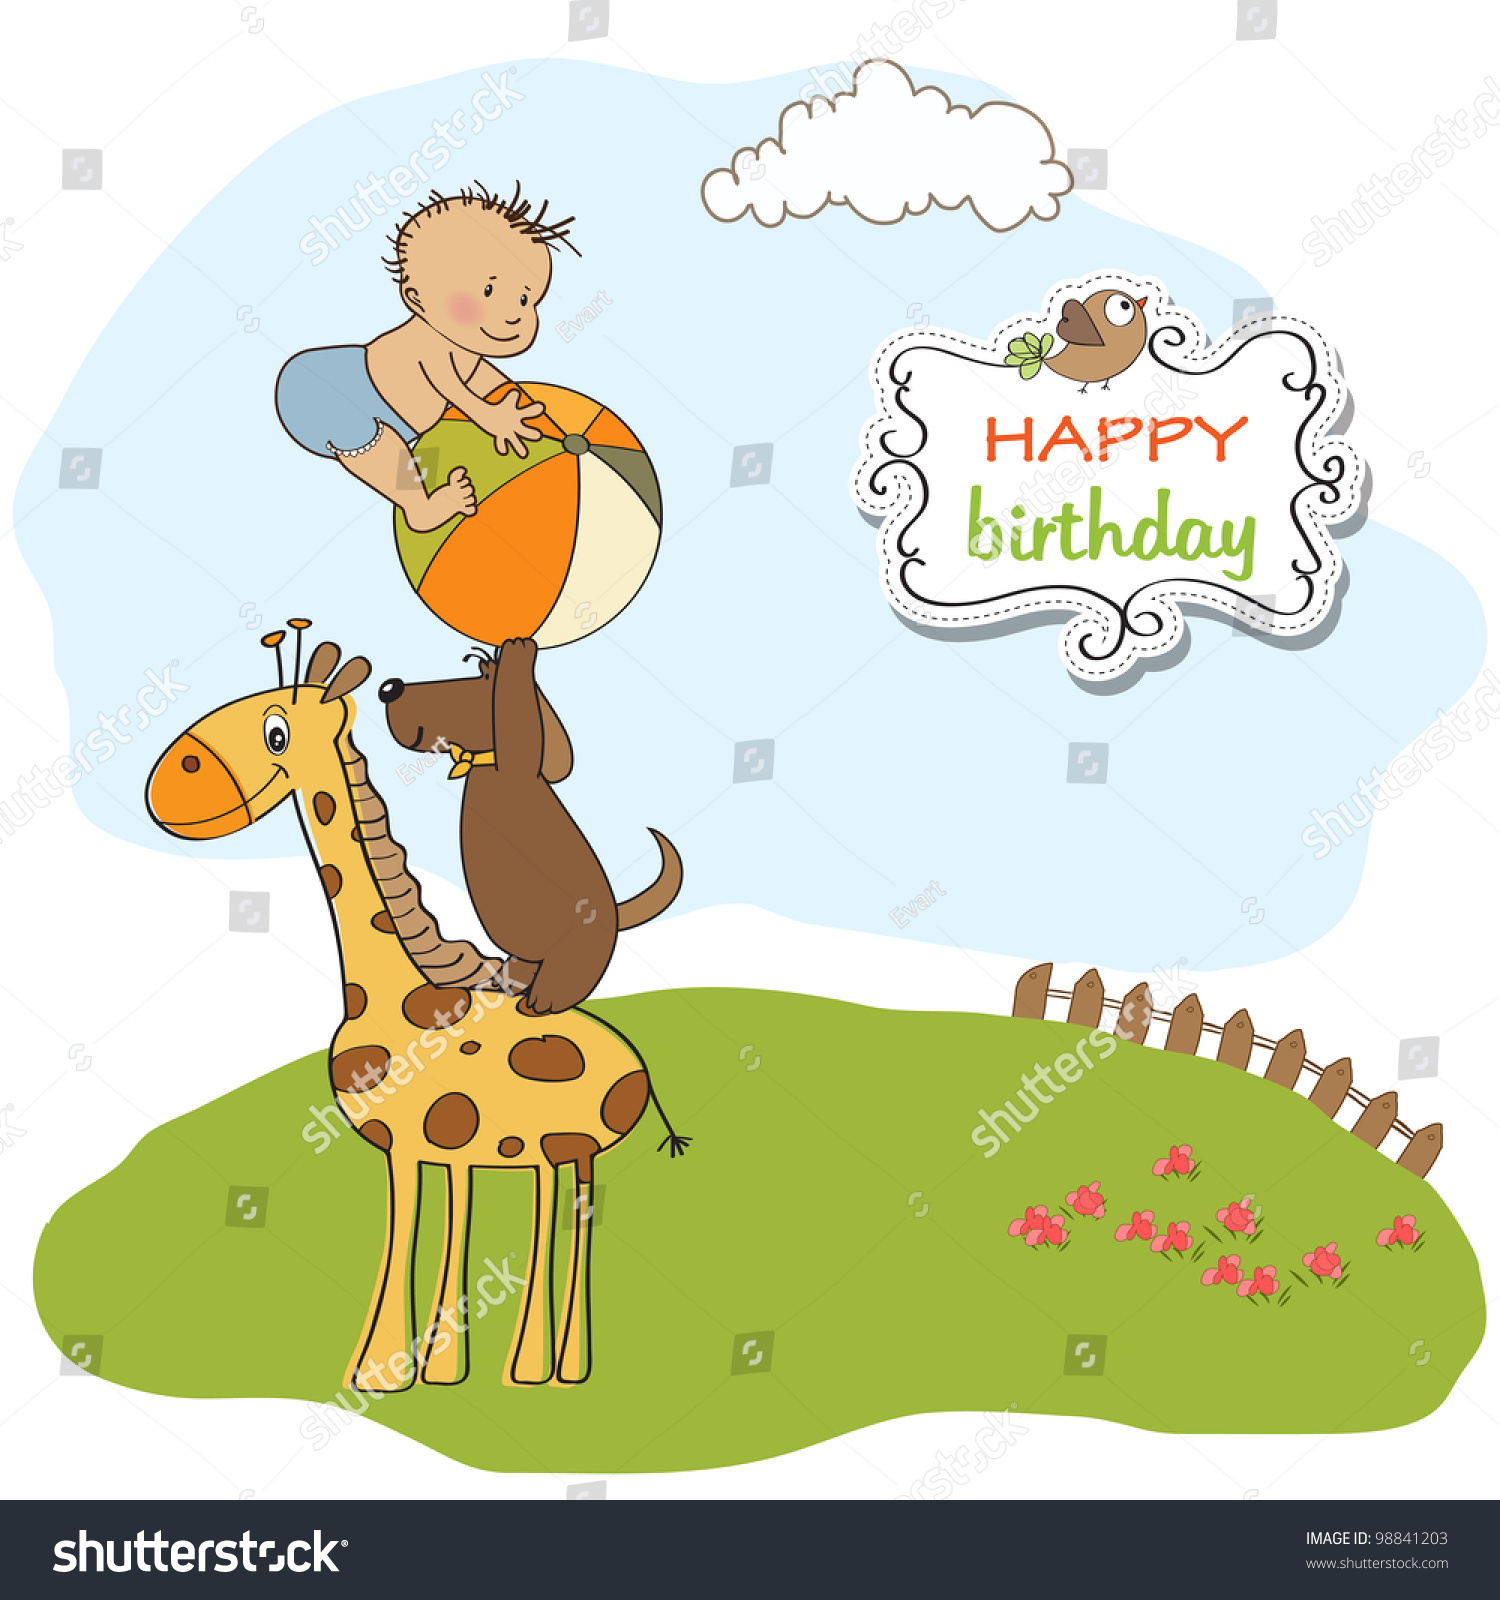 Funny Cartoon Birthday Greeting Card Stock Vector